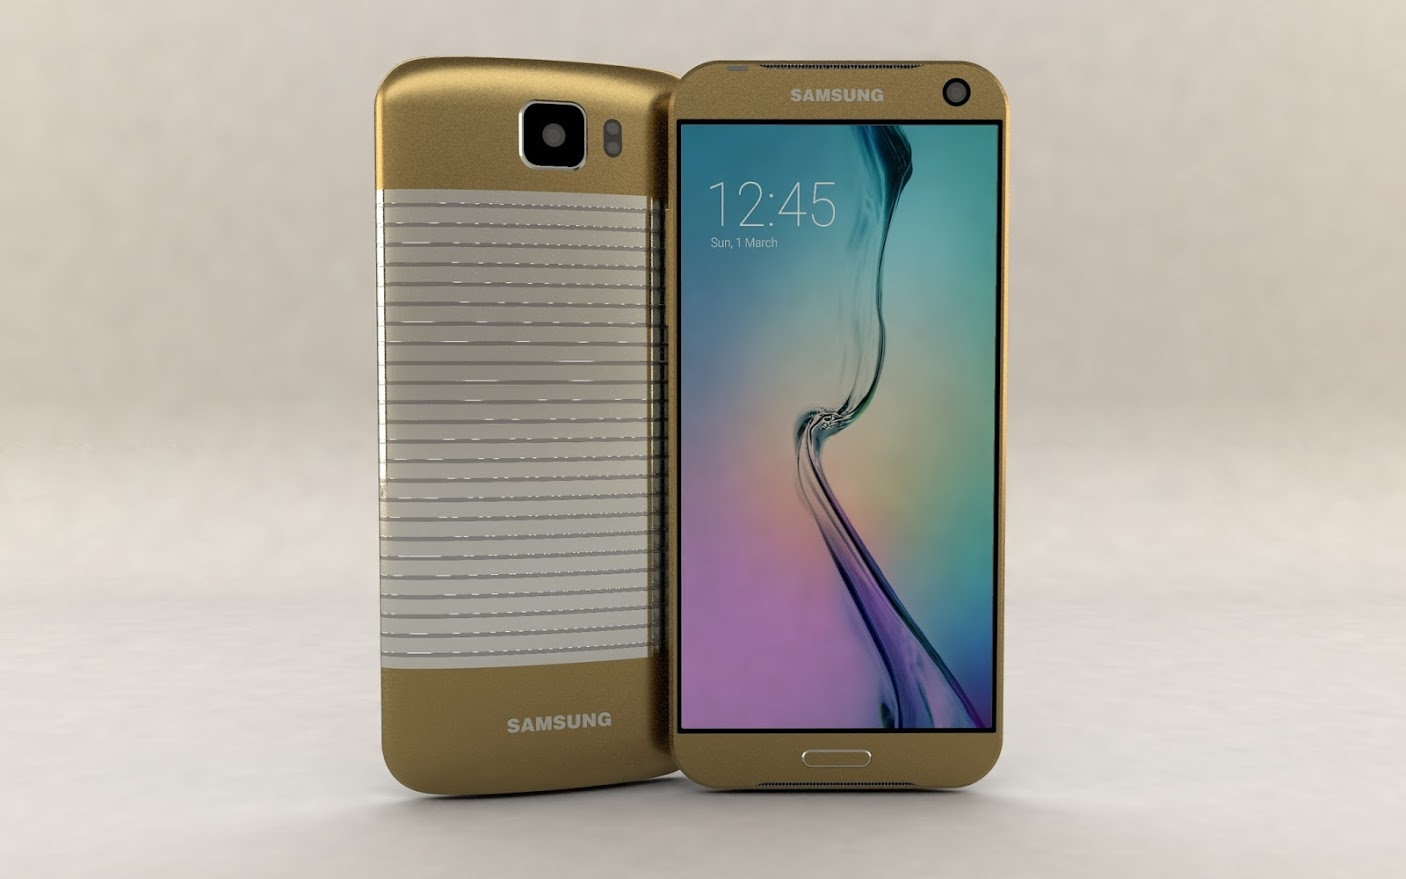 Samsung Smartphones: Two of the Hottest Next-Generation Devices of the Korean Tech Giant